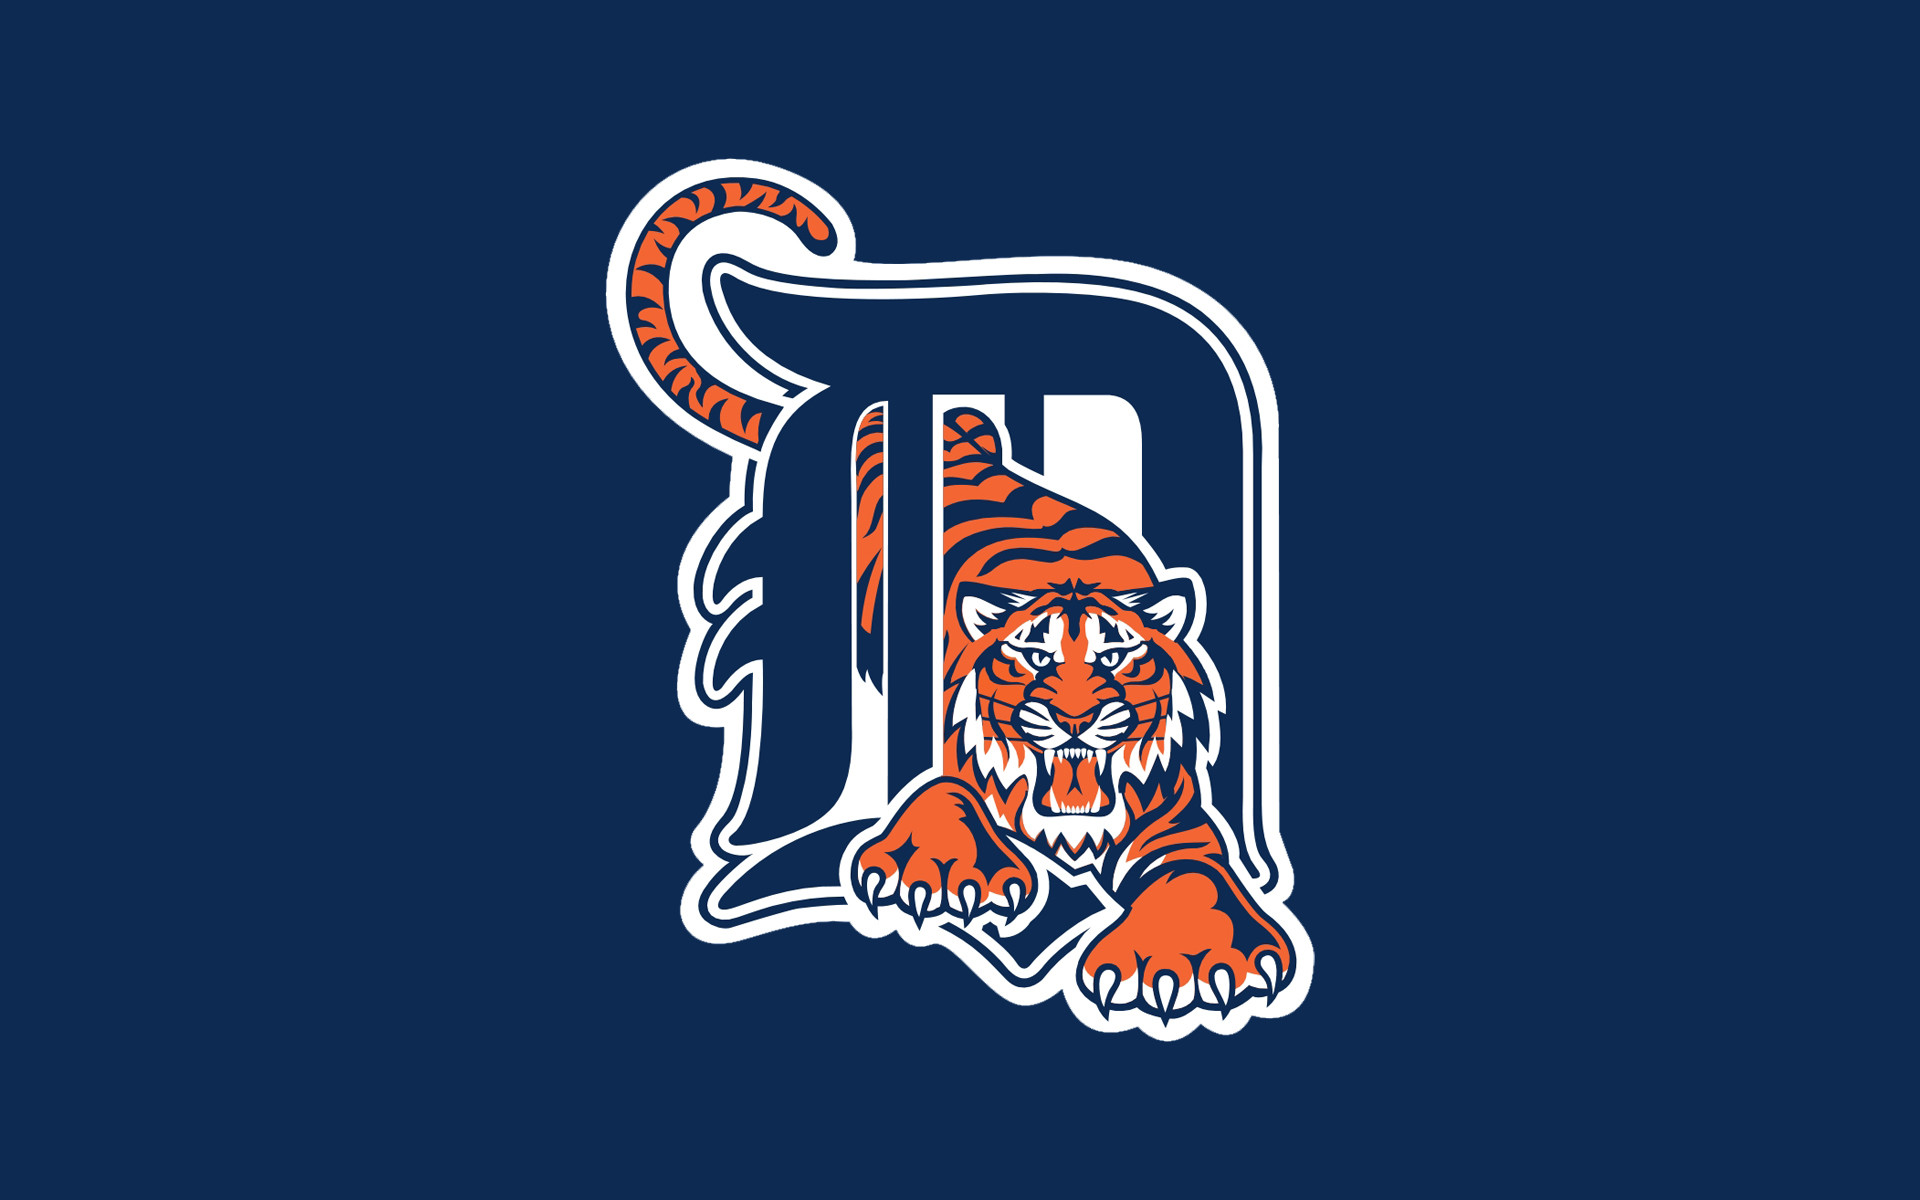 1920x1200 Detroit Tigers Wallpaper For Computer